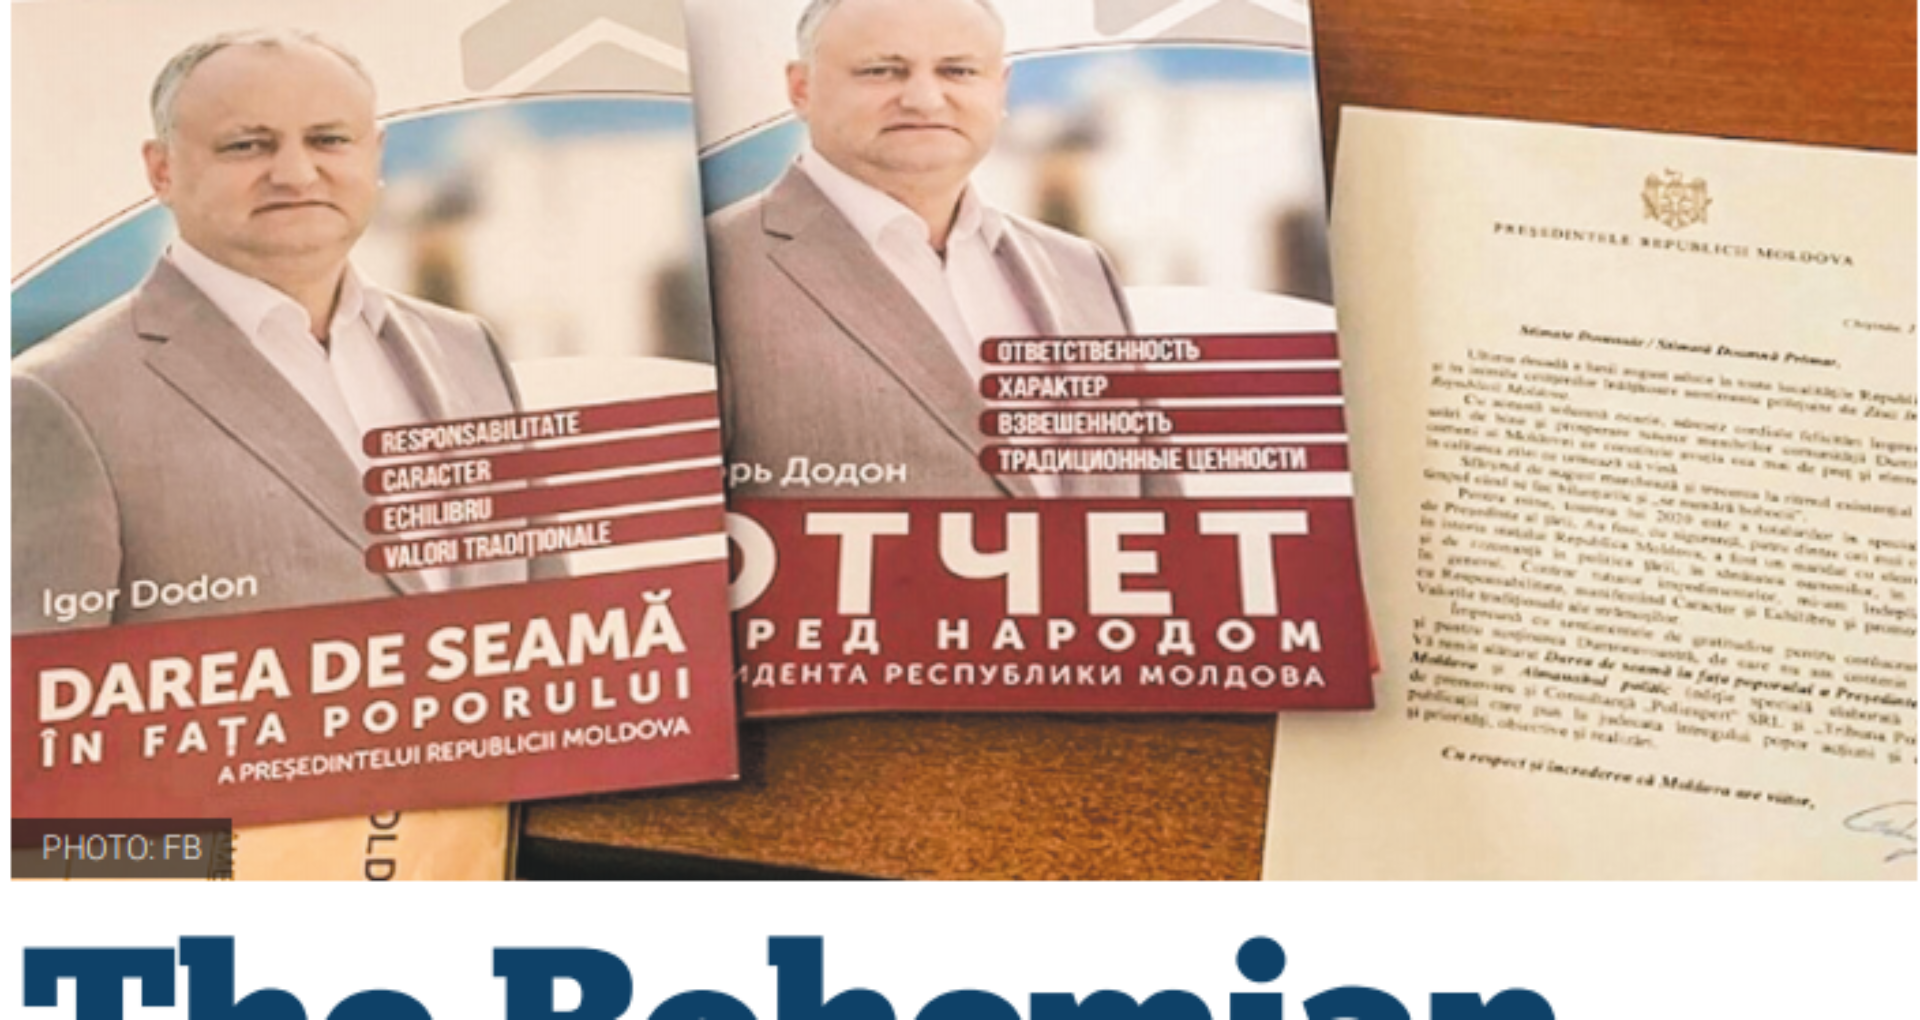 The Bohemian Presidency: How the Presidential Administration Spent over €3 Million in the Last Two Years